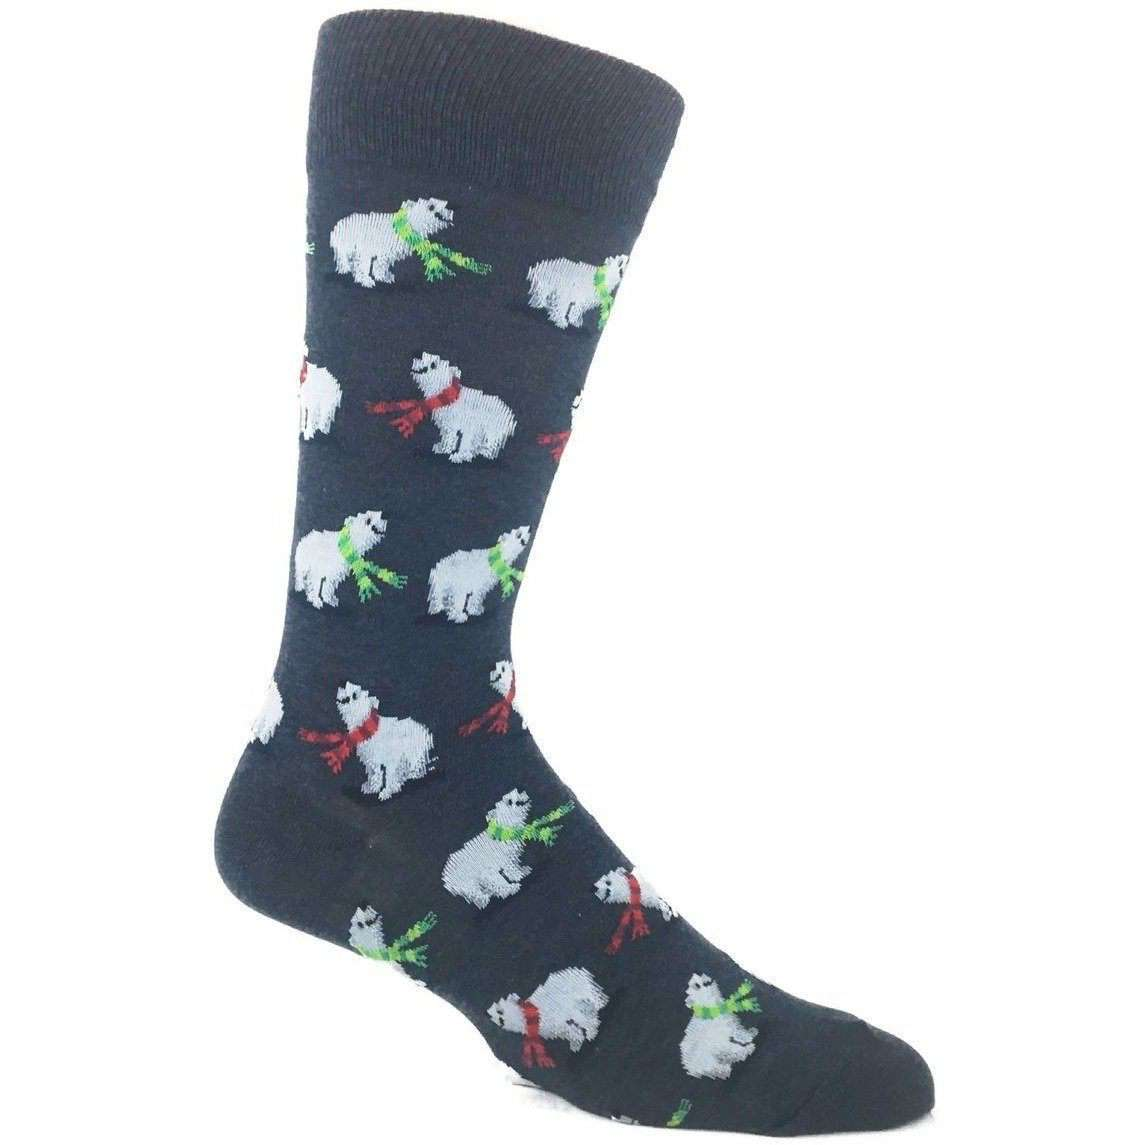 Hot Sox Holiday Socks Men 6.5 - 12 Polar Bears Christmas Socks - Men's Socks by Hot Sox